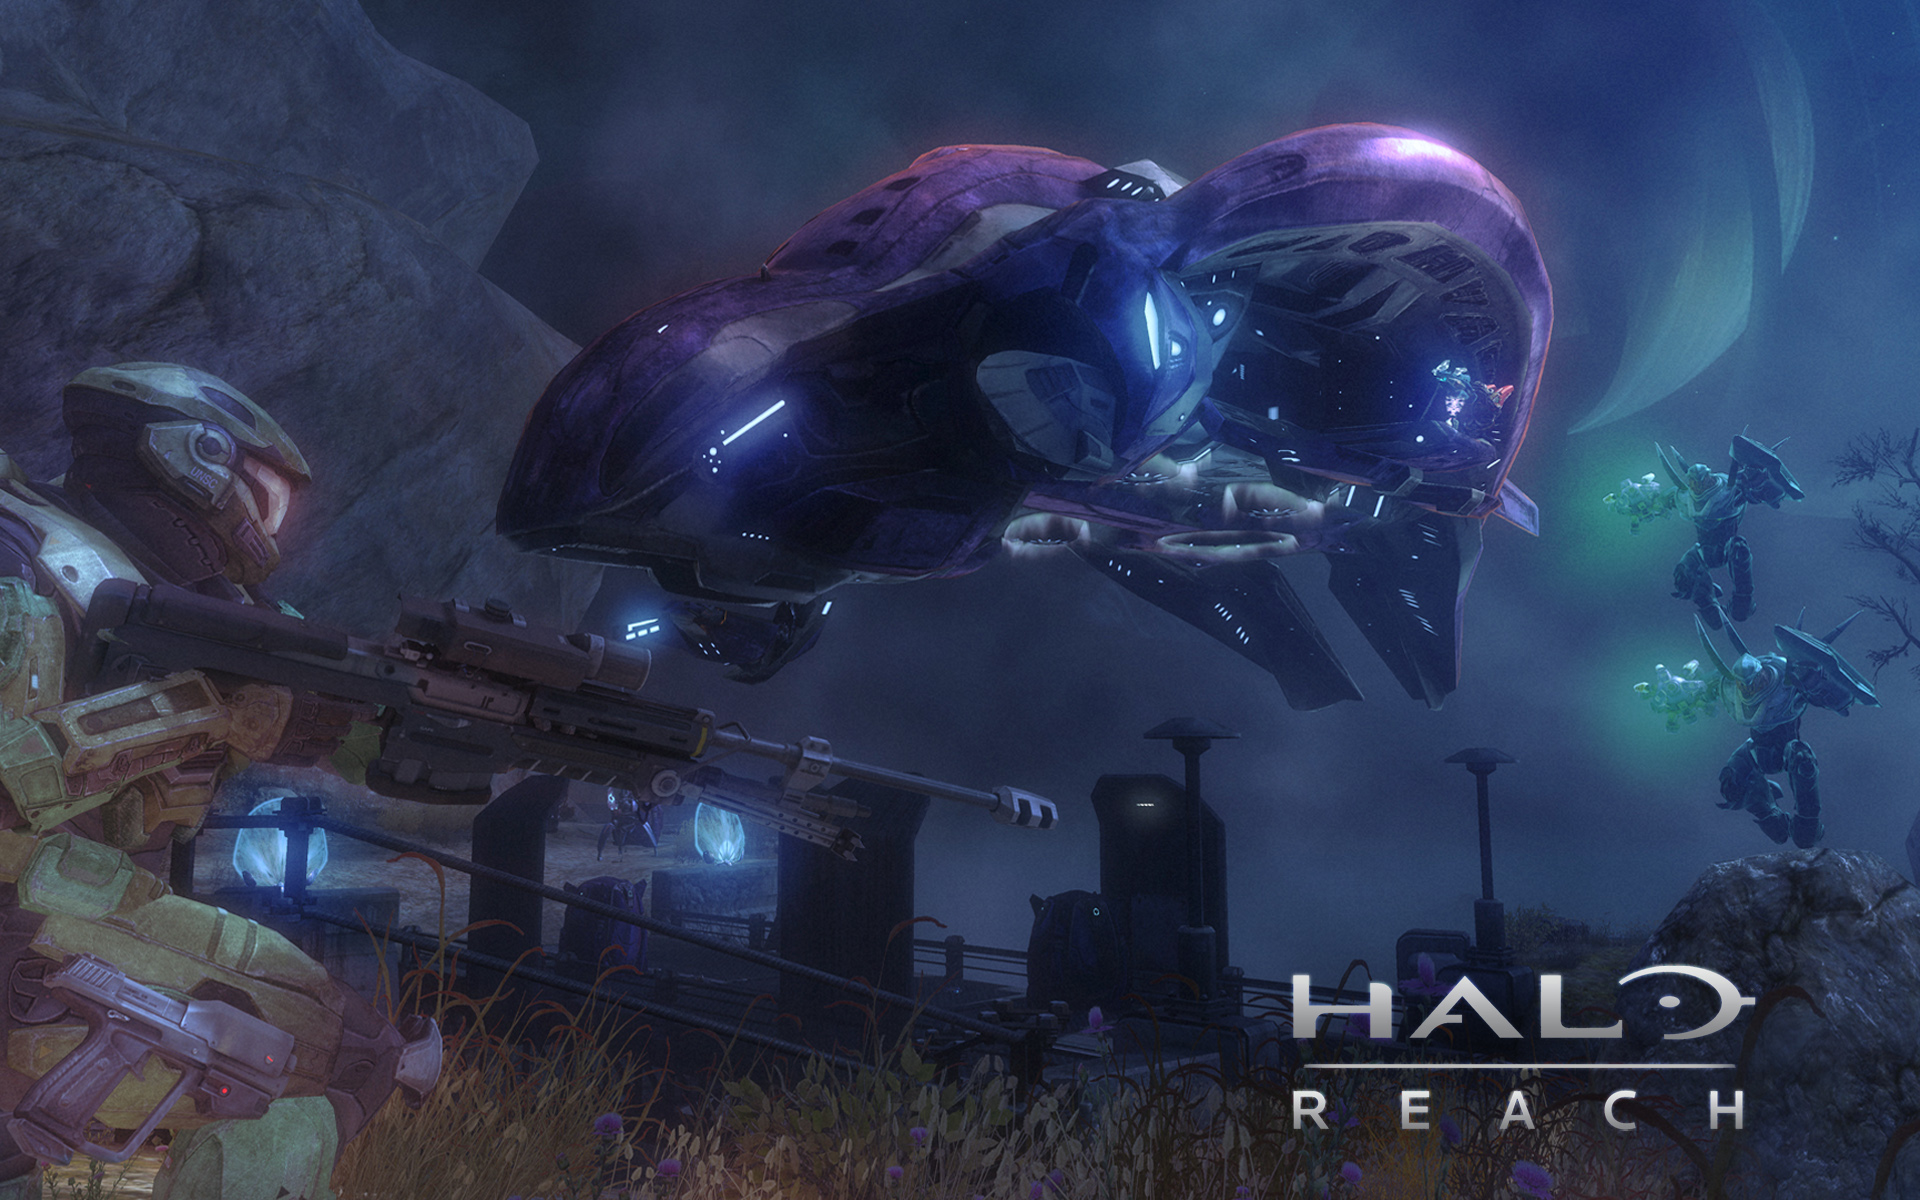 Halo Reach Widescreen Wallpapers | HD Wallpapers